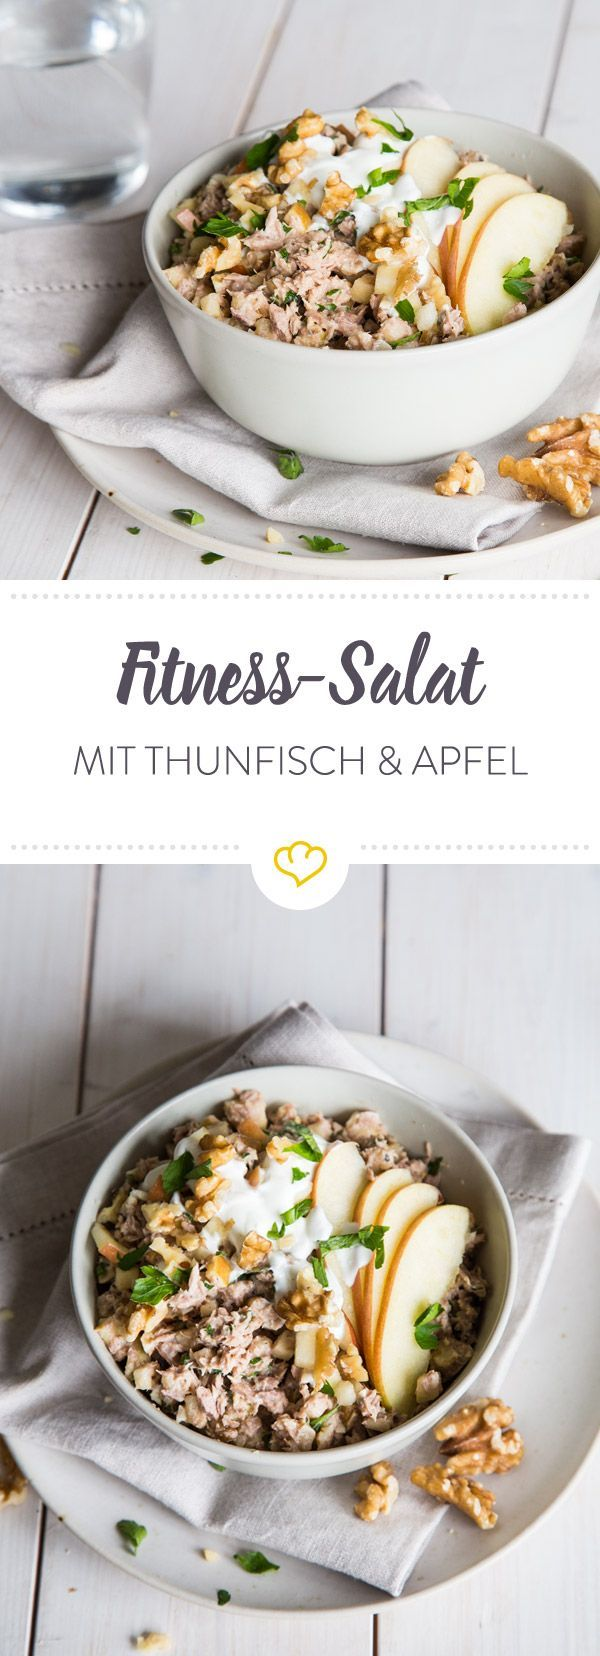 Fitness tuna salad with apple and walnuts   - Low-Carb Rezepte - leicht & lecker -